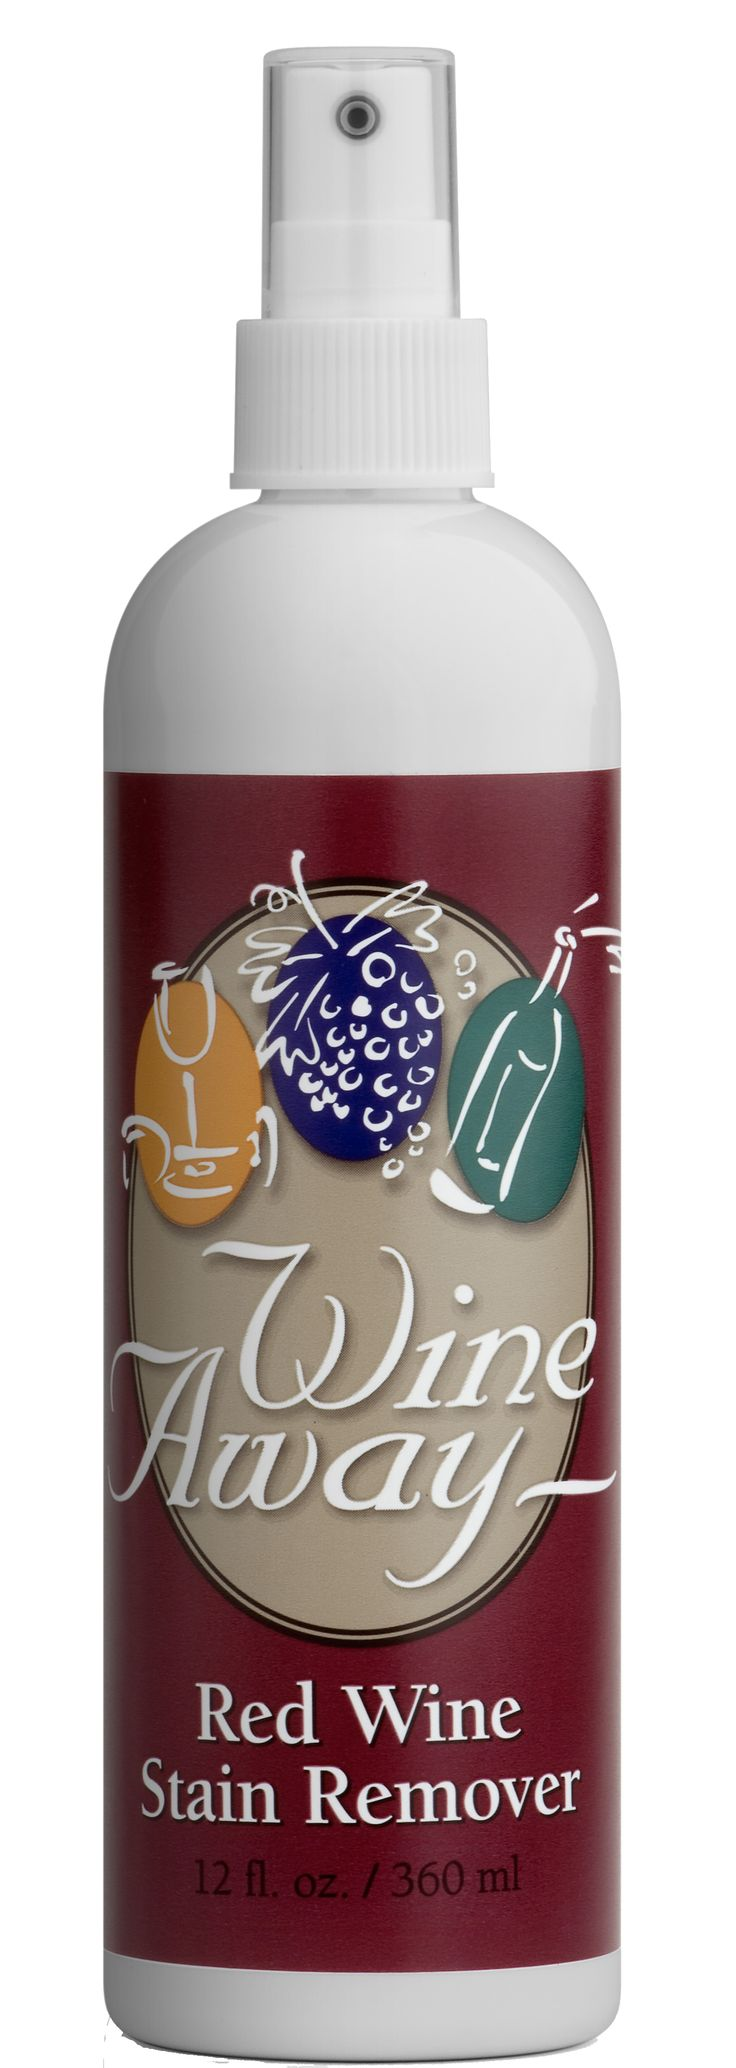 Wine Away makes removing red wine stains easy!  #redwinestains #wineaway #redwinestainremover #wineaccessory #stainremoverkit #hatewinestains